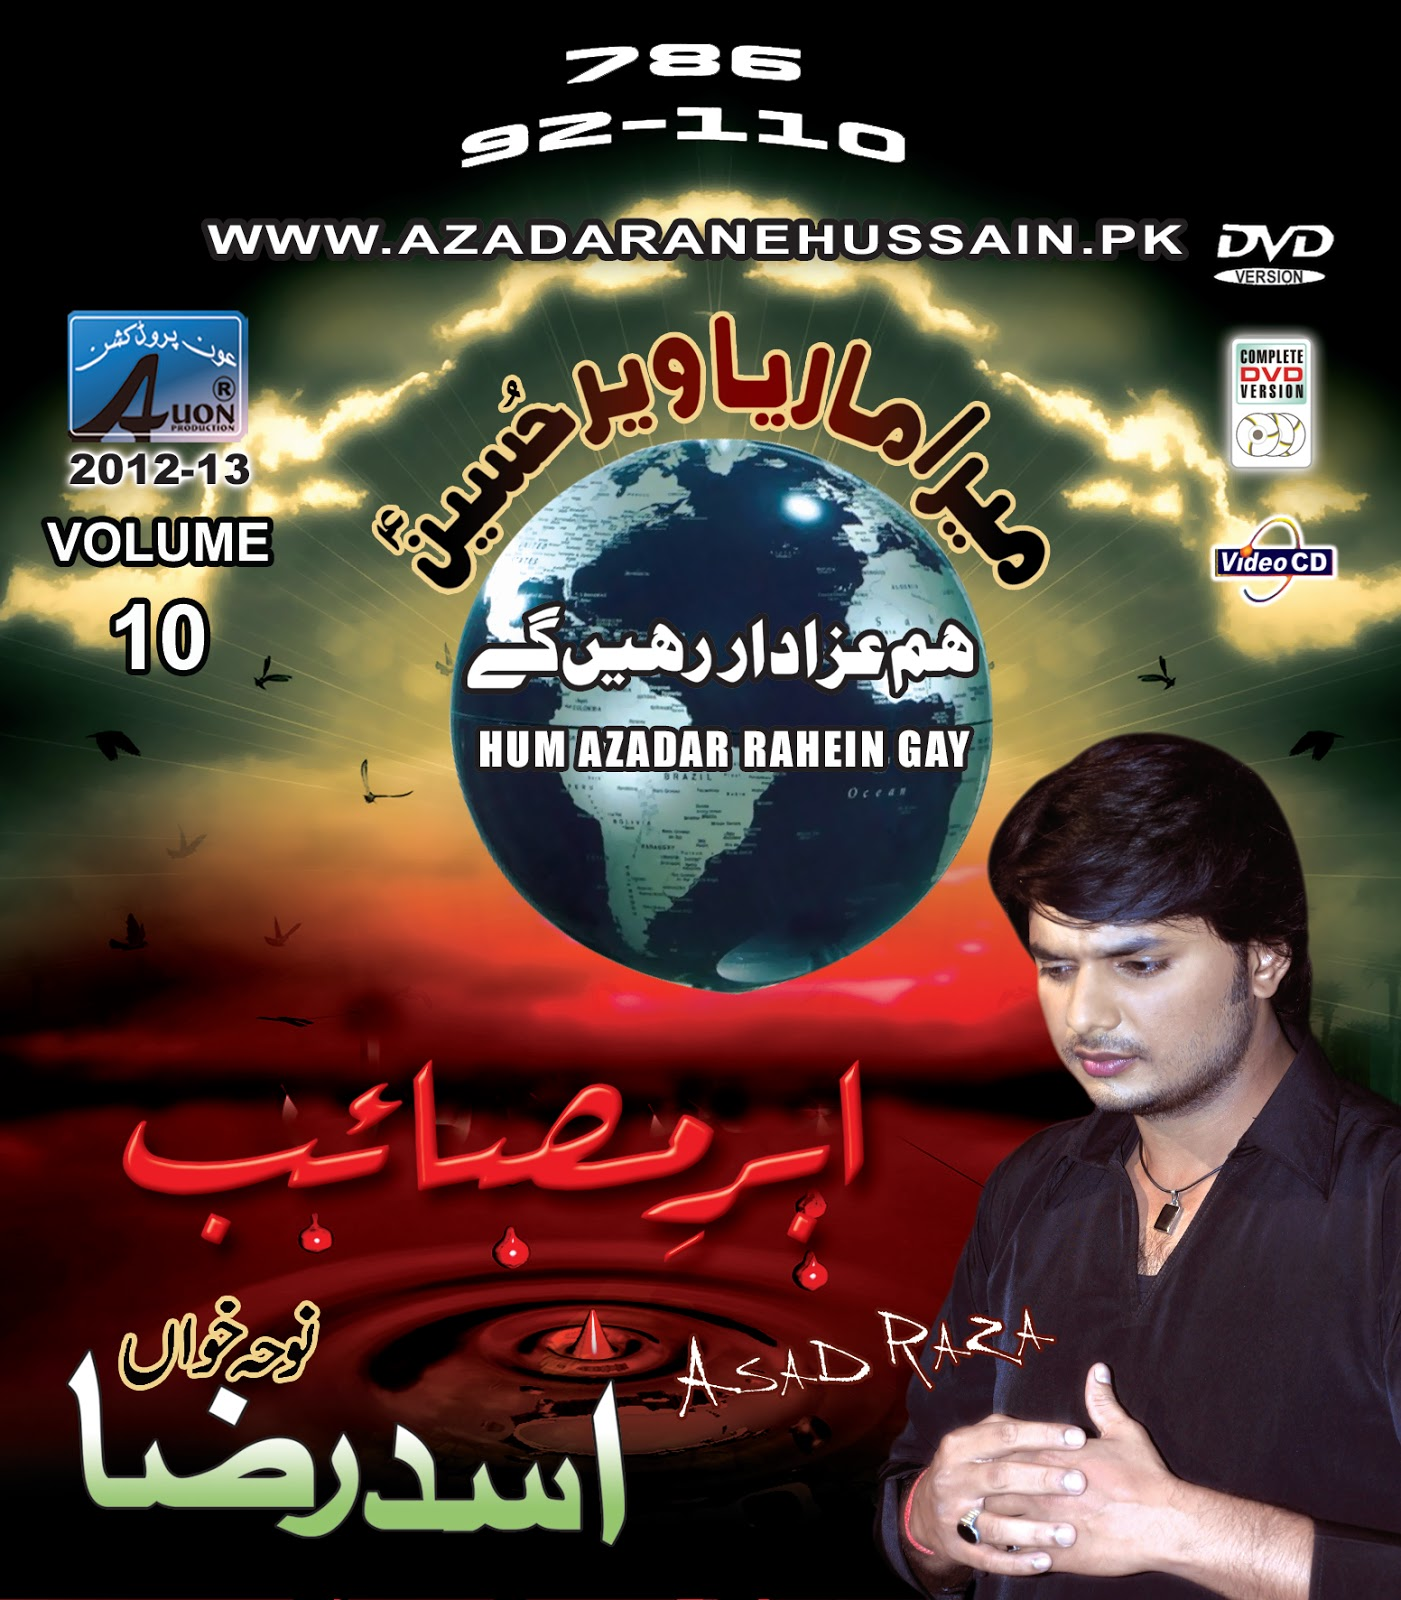 Nohay download video